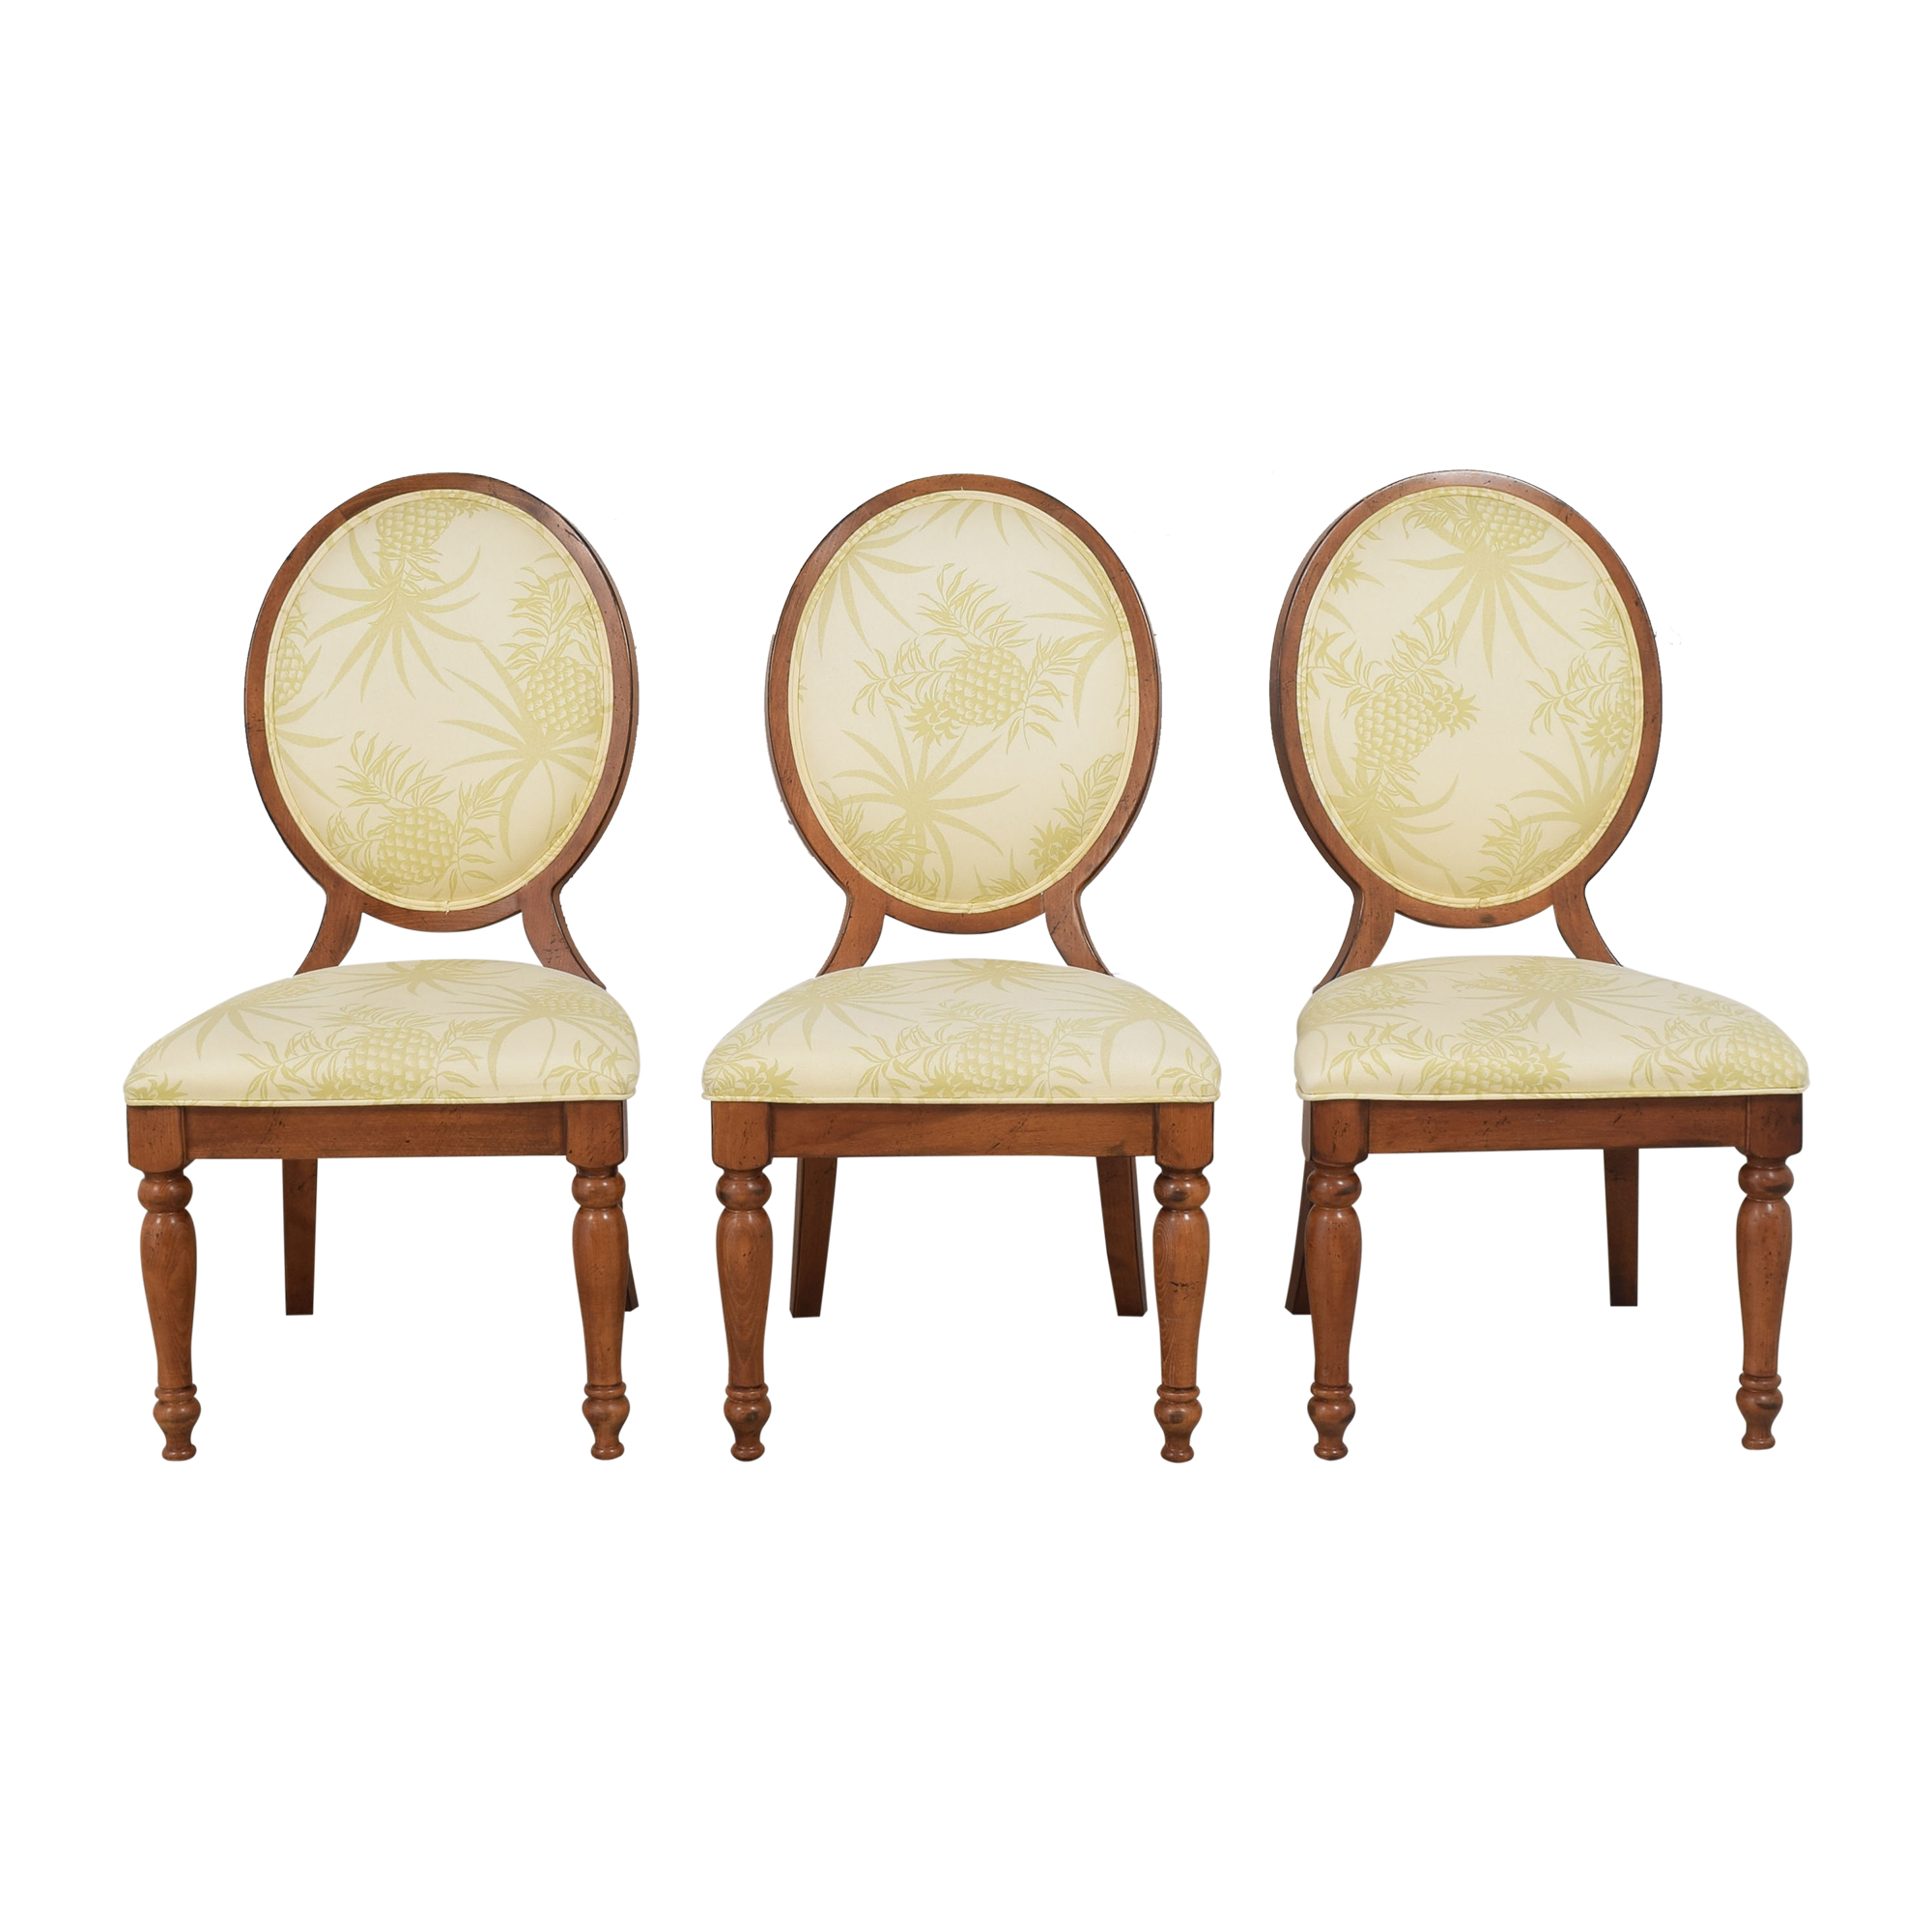 Lexington Furniture Lexington Furniture Oval Back Dining Chairs Dining Chairs